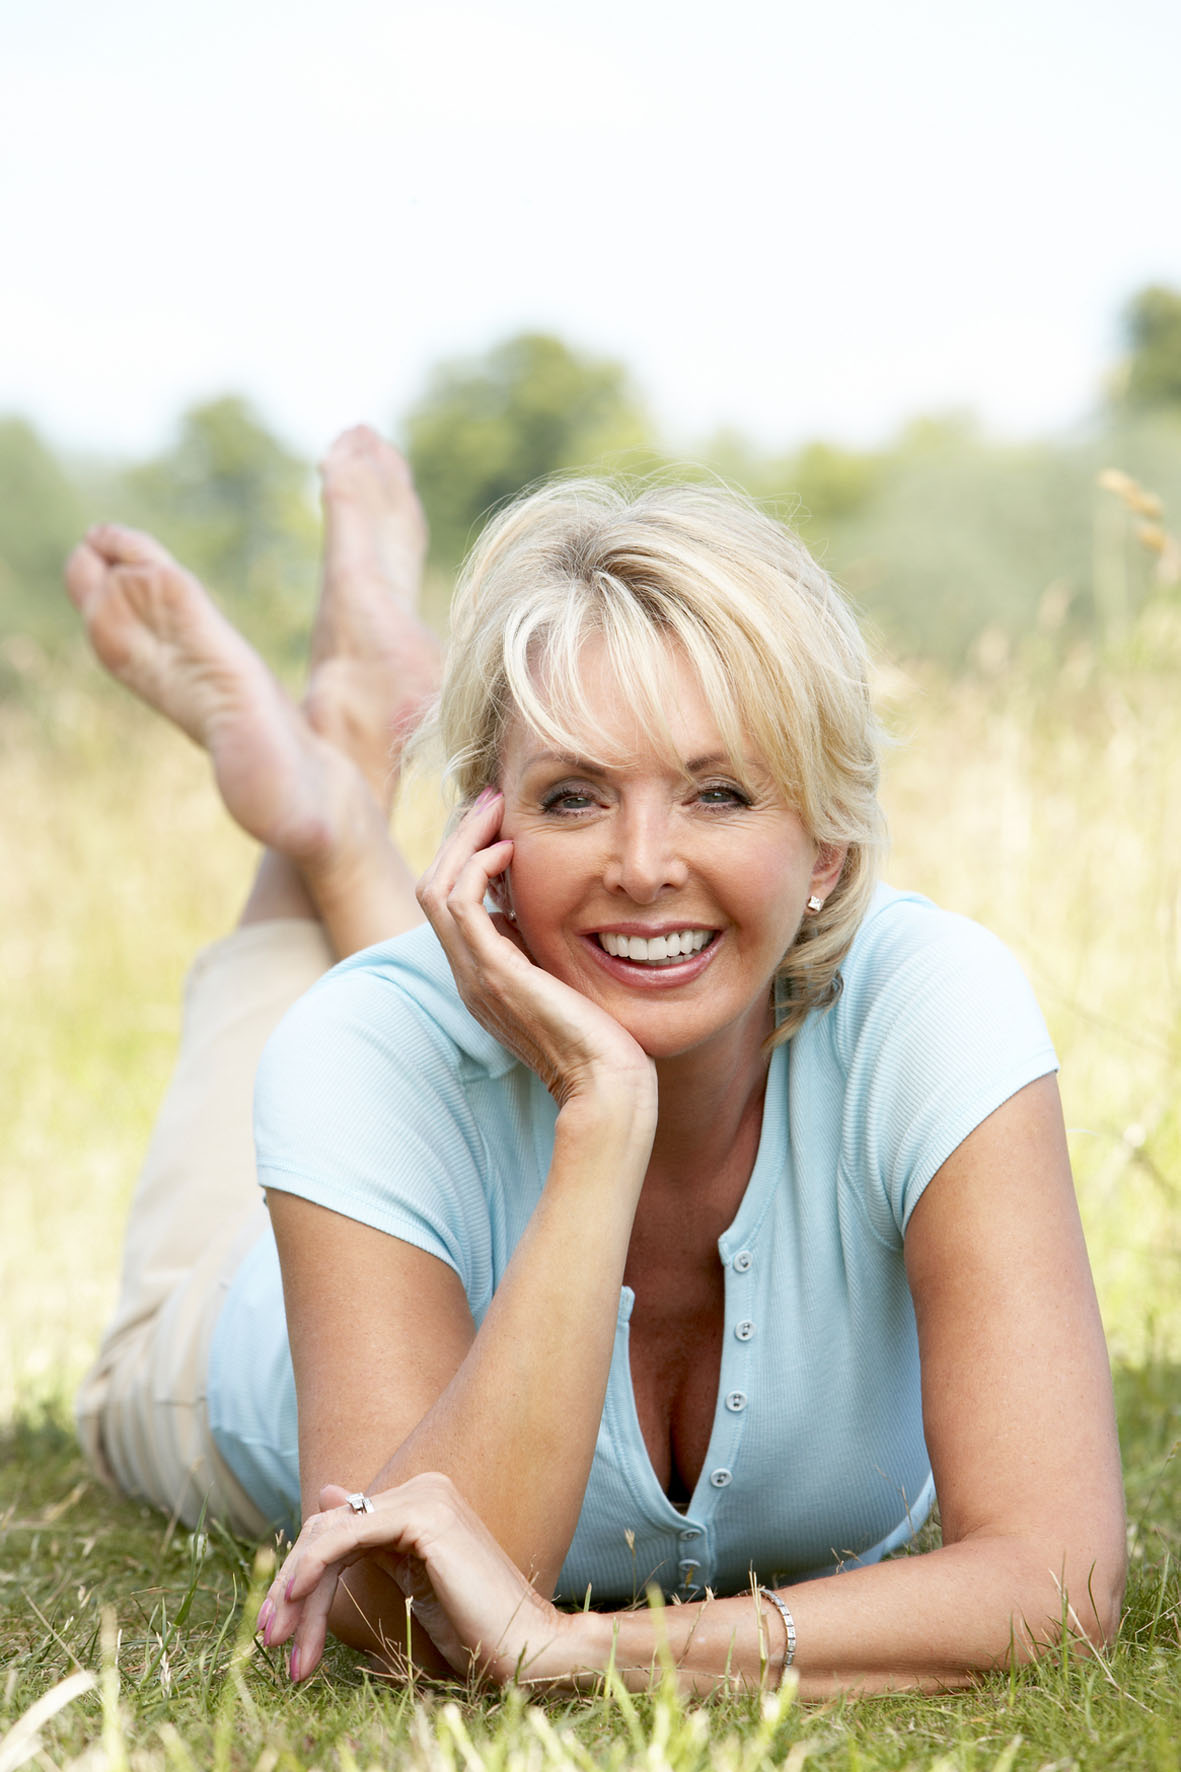 Dating frauen 50 bis 60